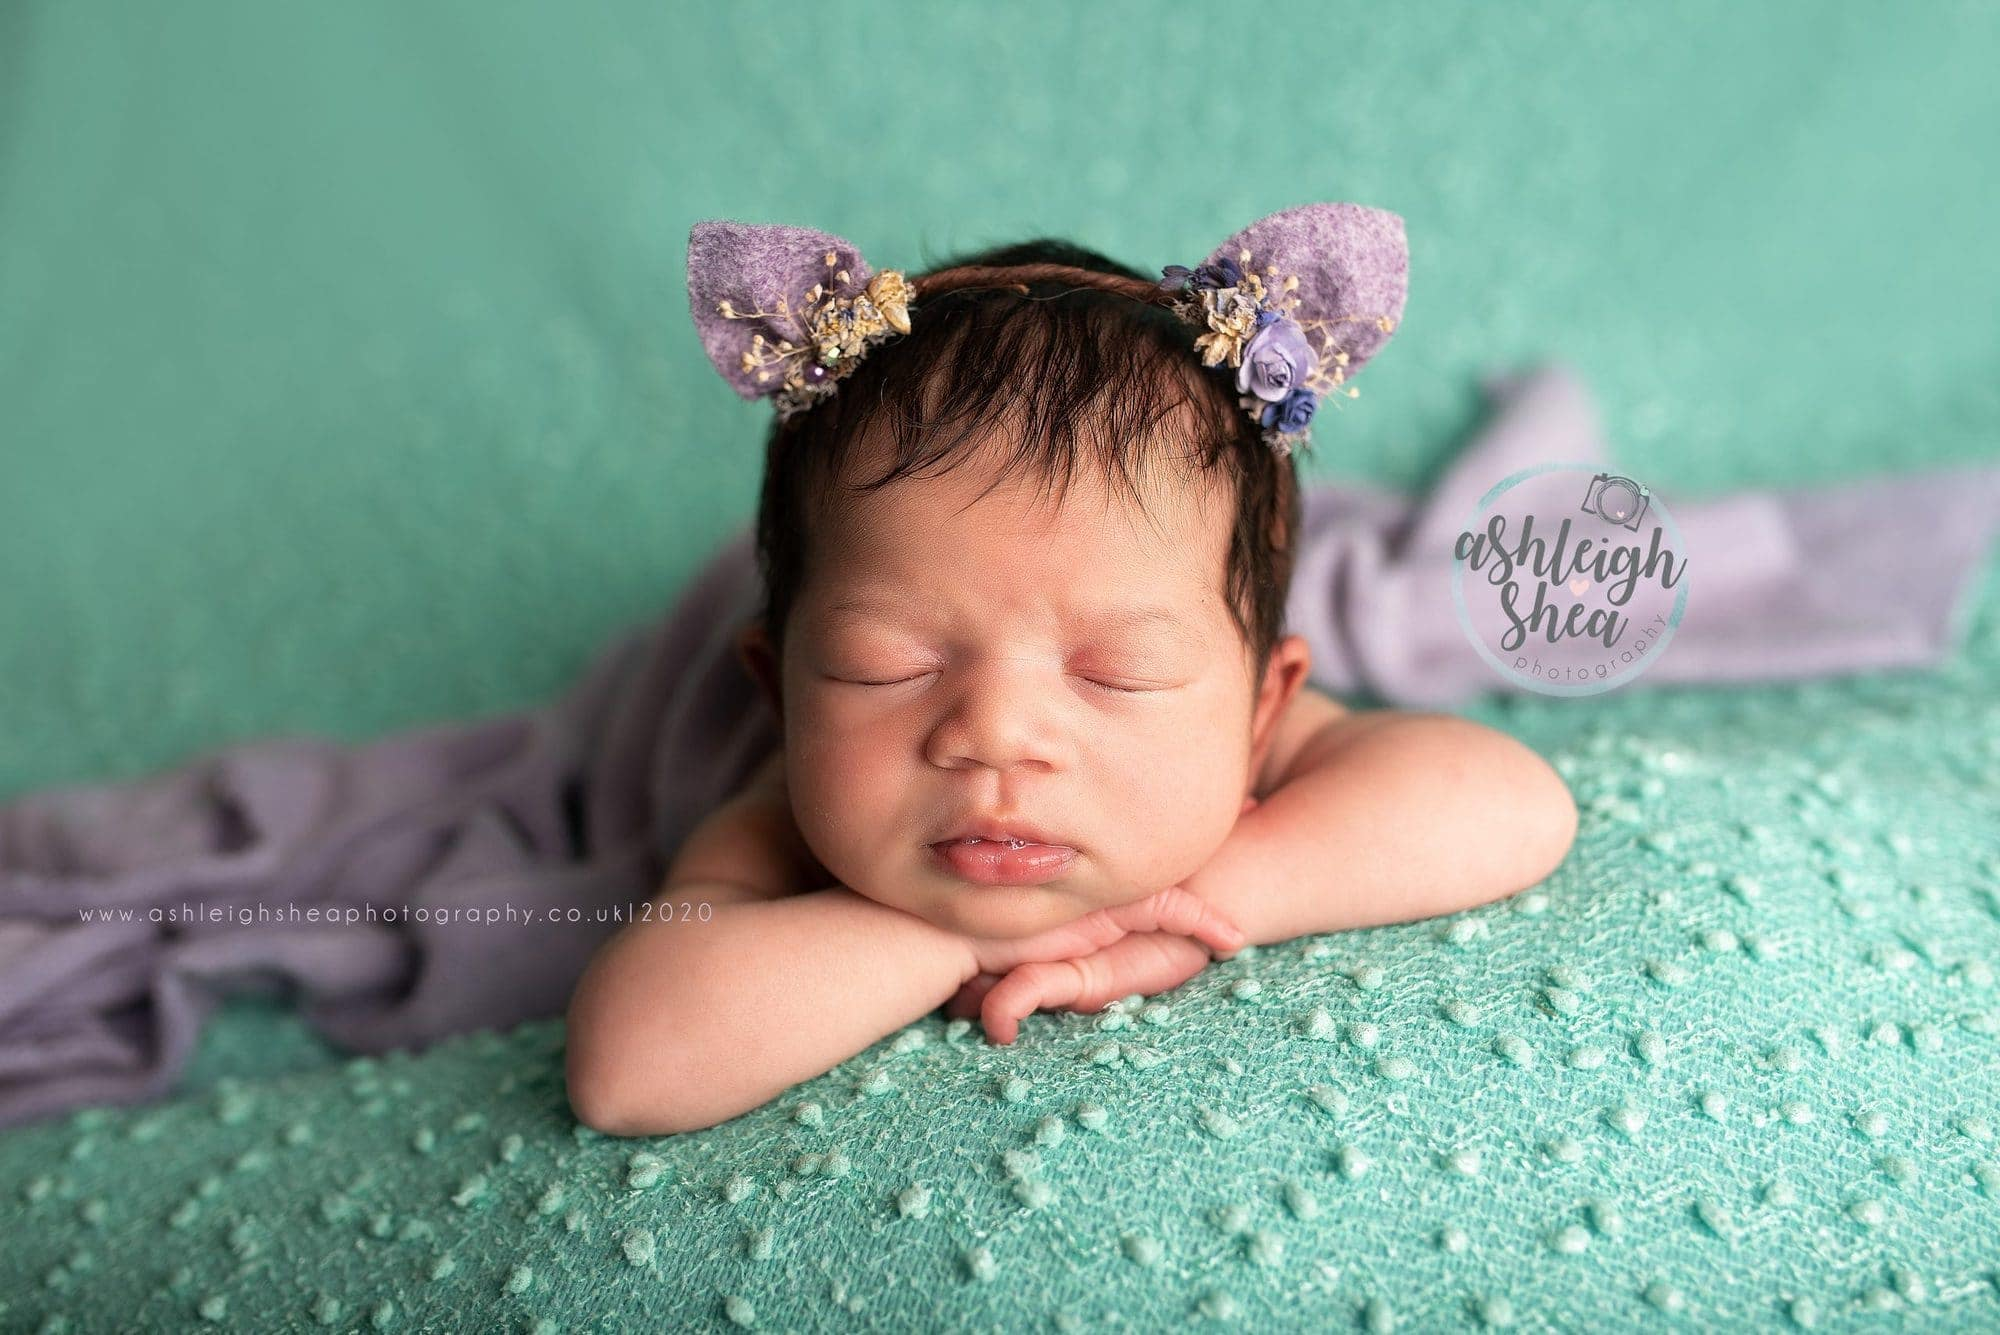 Baby Girl, Mint, Lilac, Baby Kitten, Ashleigh Shea Photography, Petts Wood, Kent